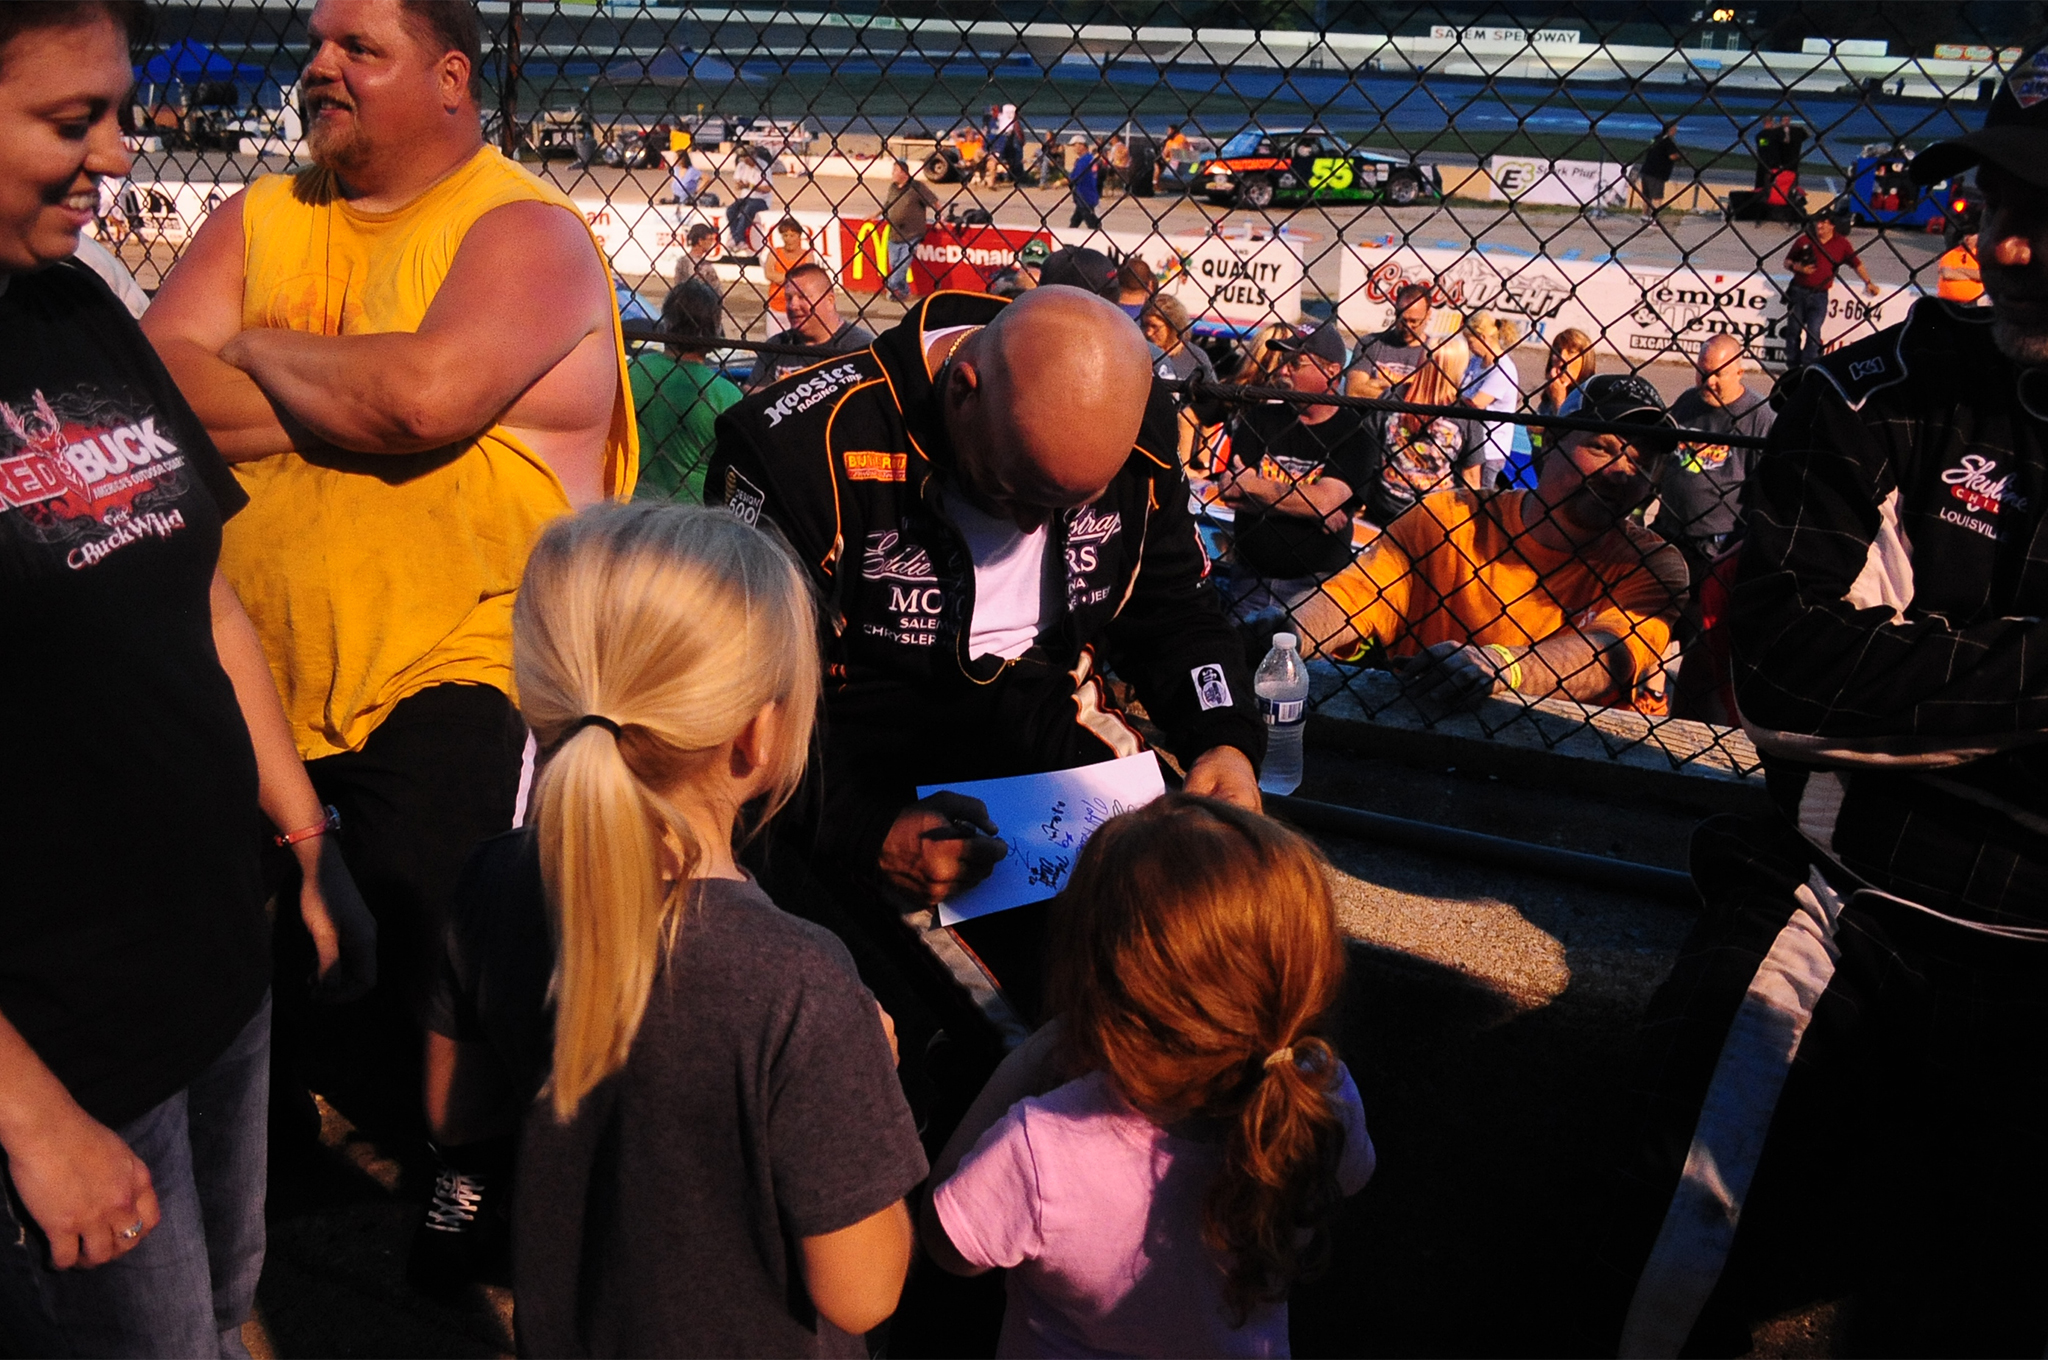 As part of that awards presentation, a drivers' autograph session was held in the main grandstand area with the cars lined up on the starting grid behind.